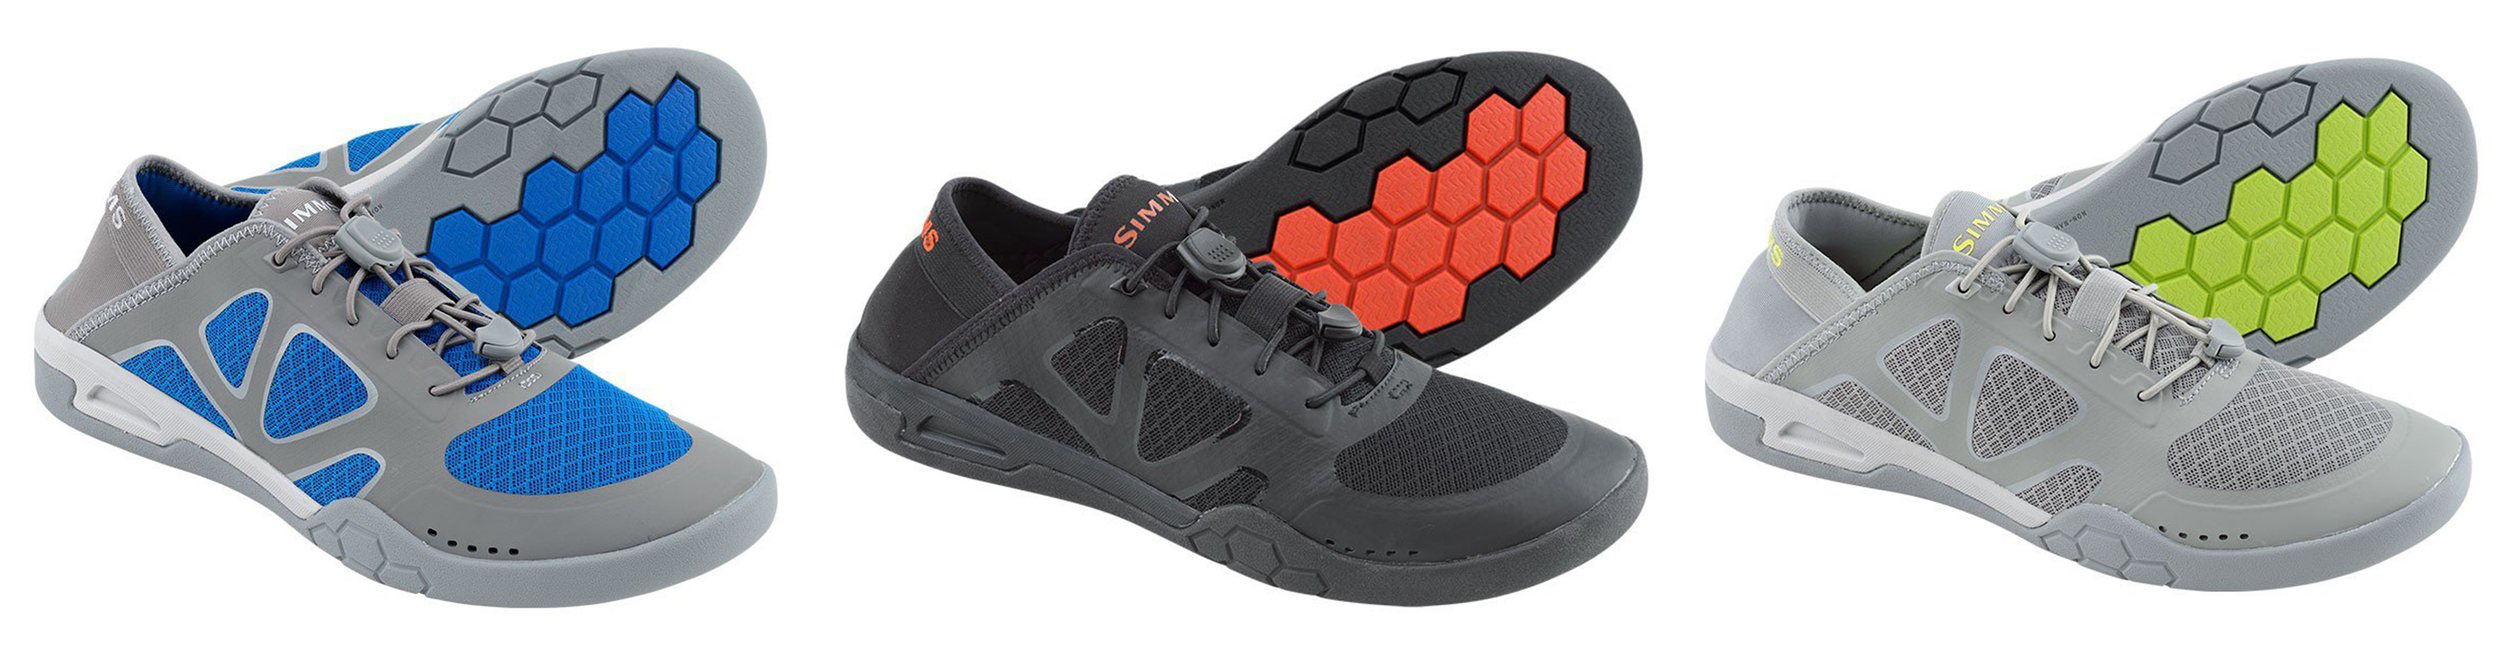 Simms Currents Shoe, available in three colors, sizes 7 to 14 whole/half sizes, D width. Approximate pair weight (size 11): 20.8 ounces